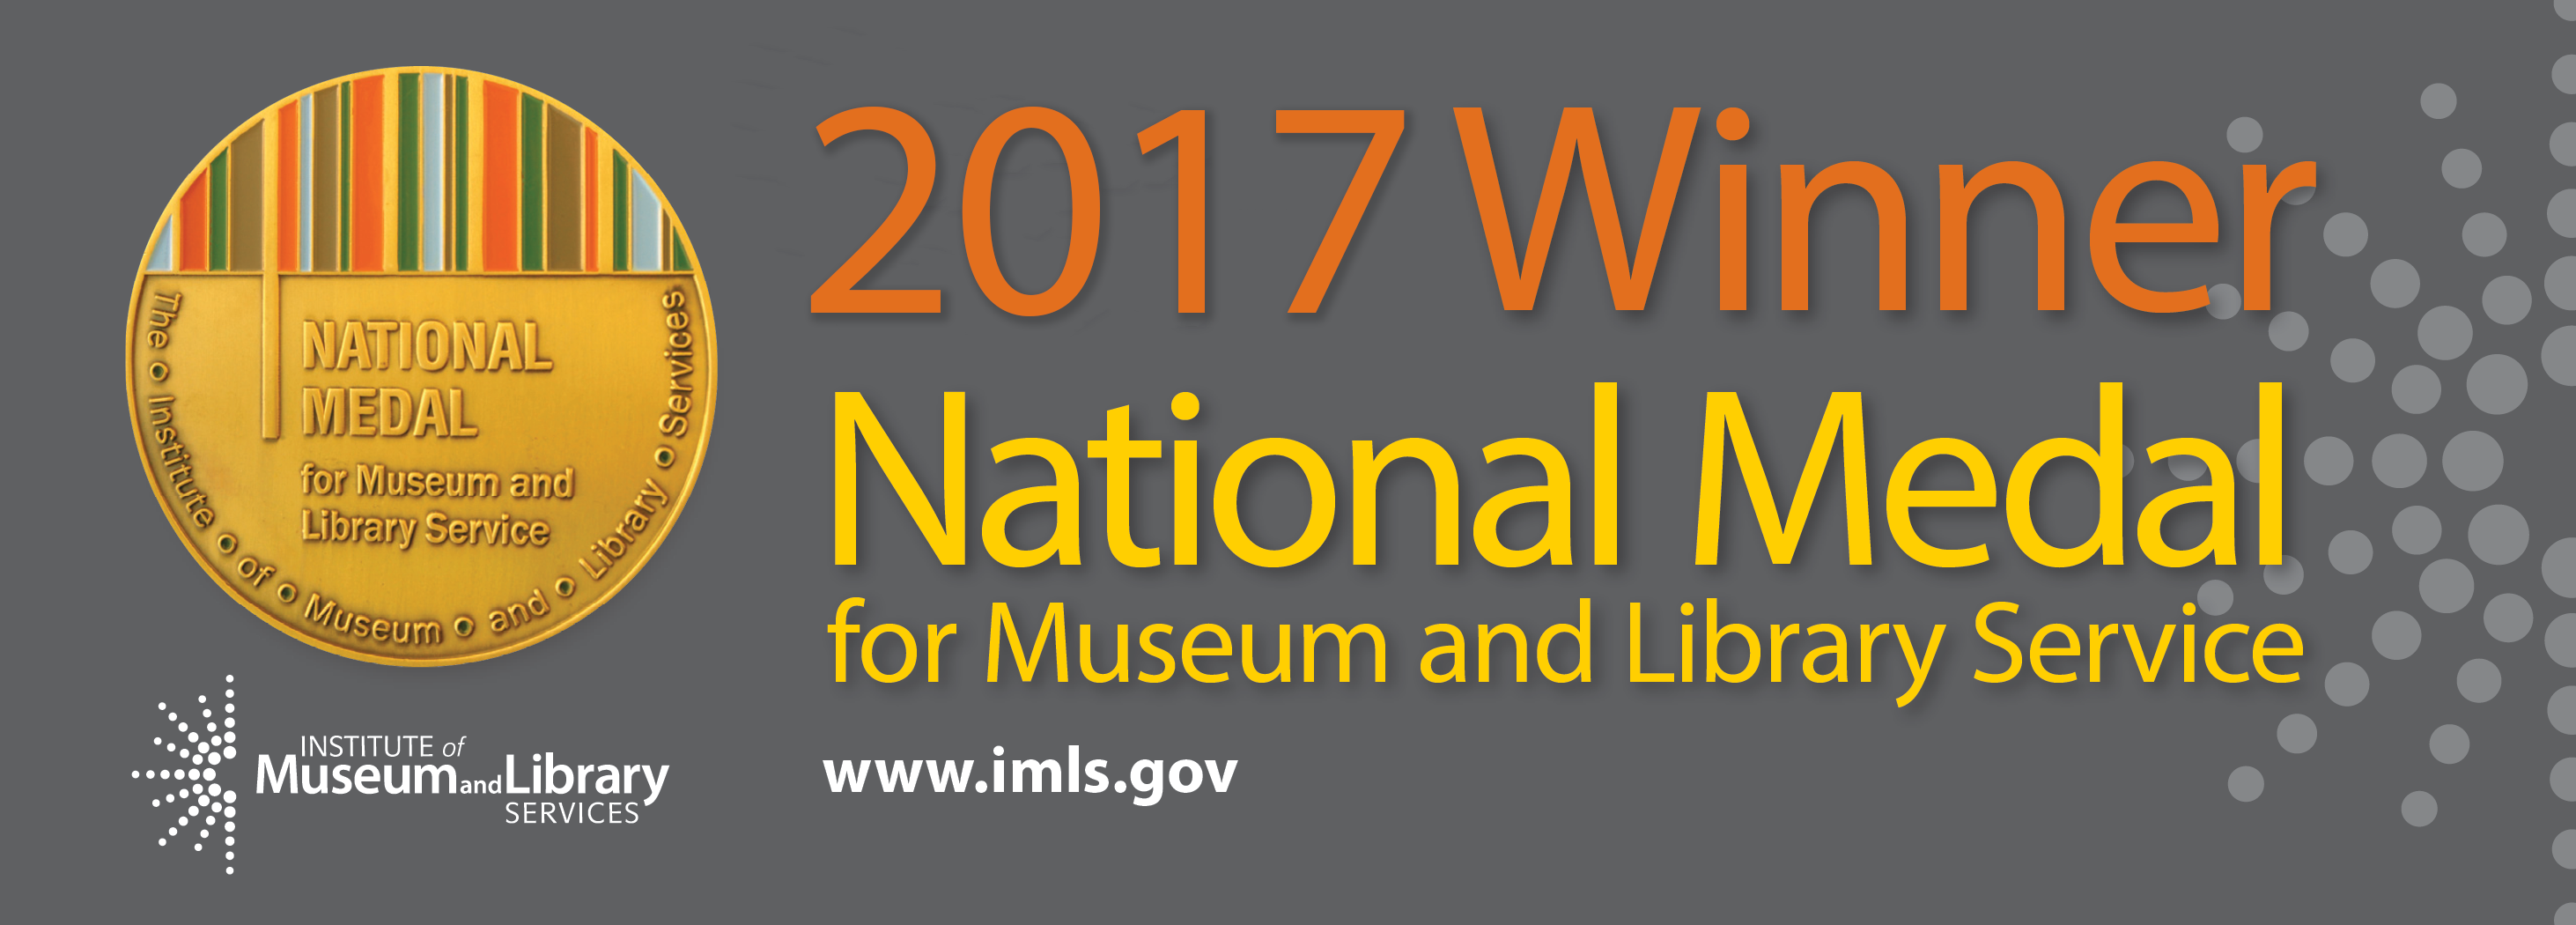 2017 Winner: National Medal for Museum and Library Service